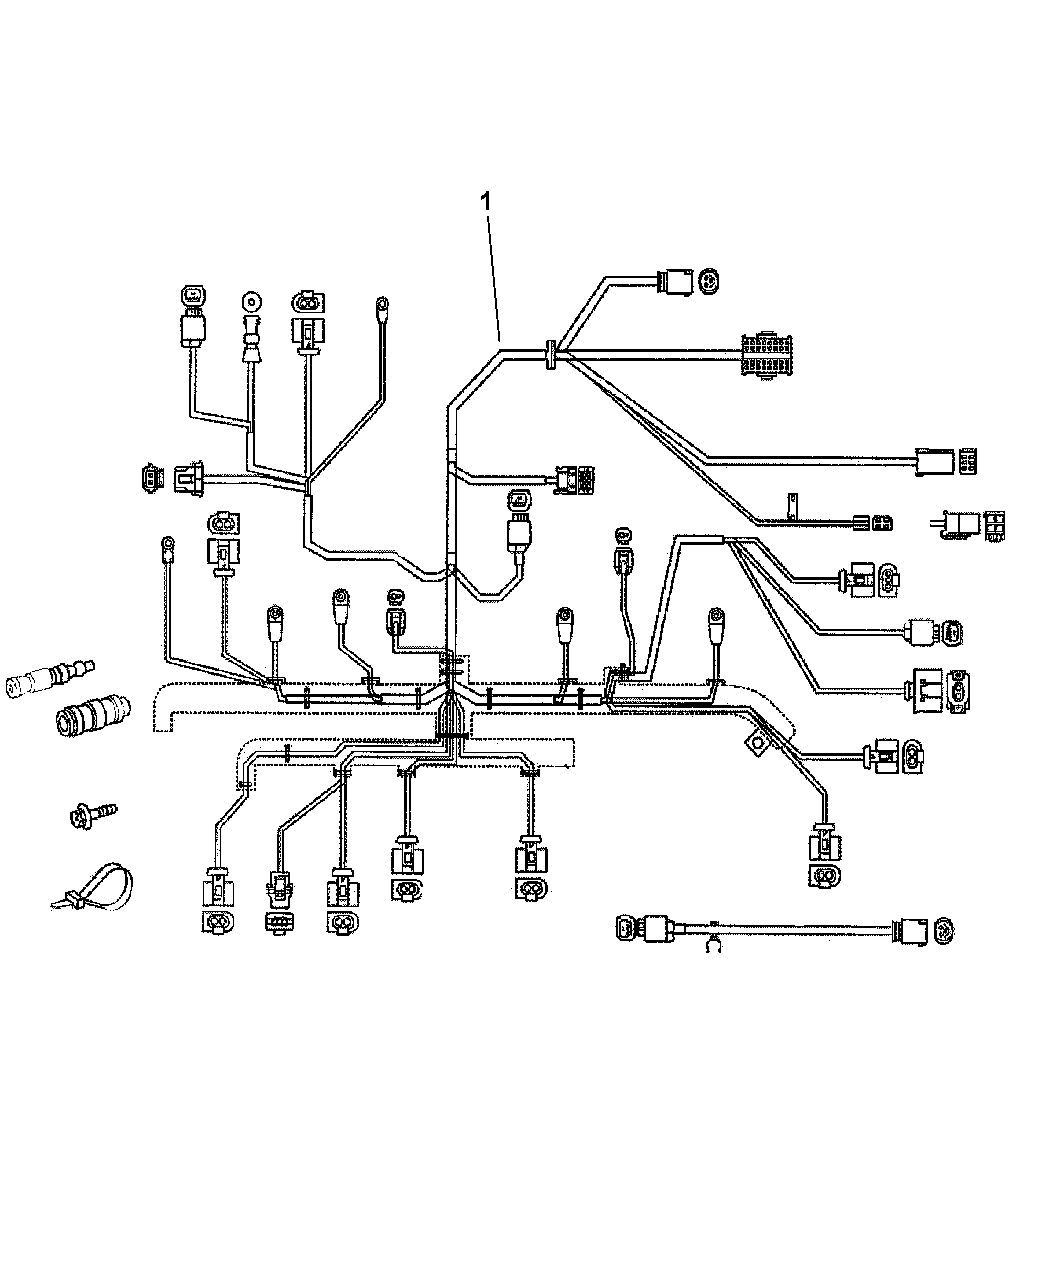 [WRG-5951] 2002 Sprinter Wiring Diagrams